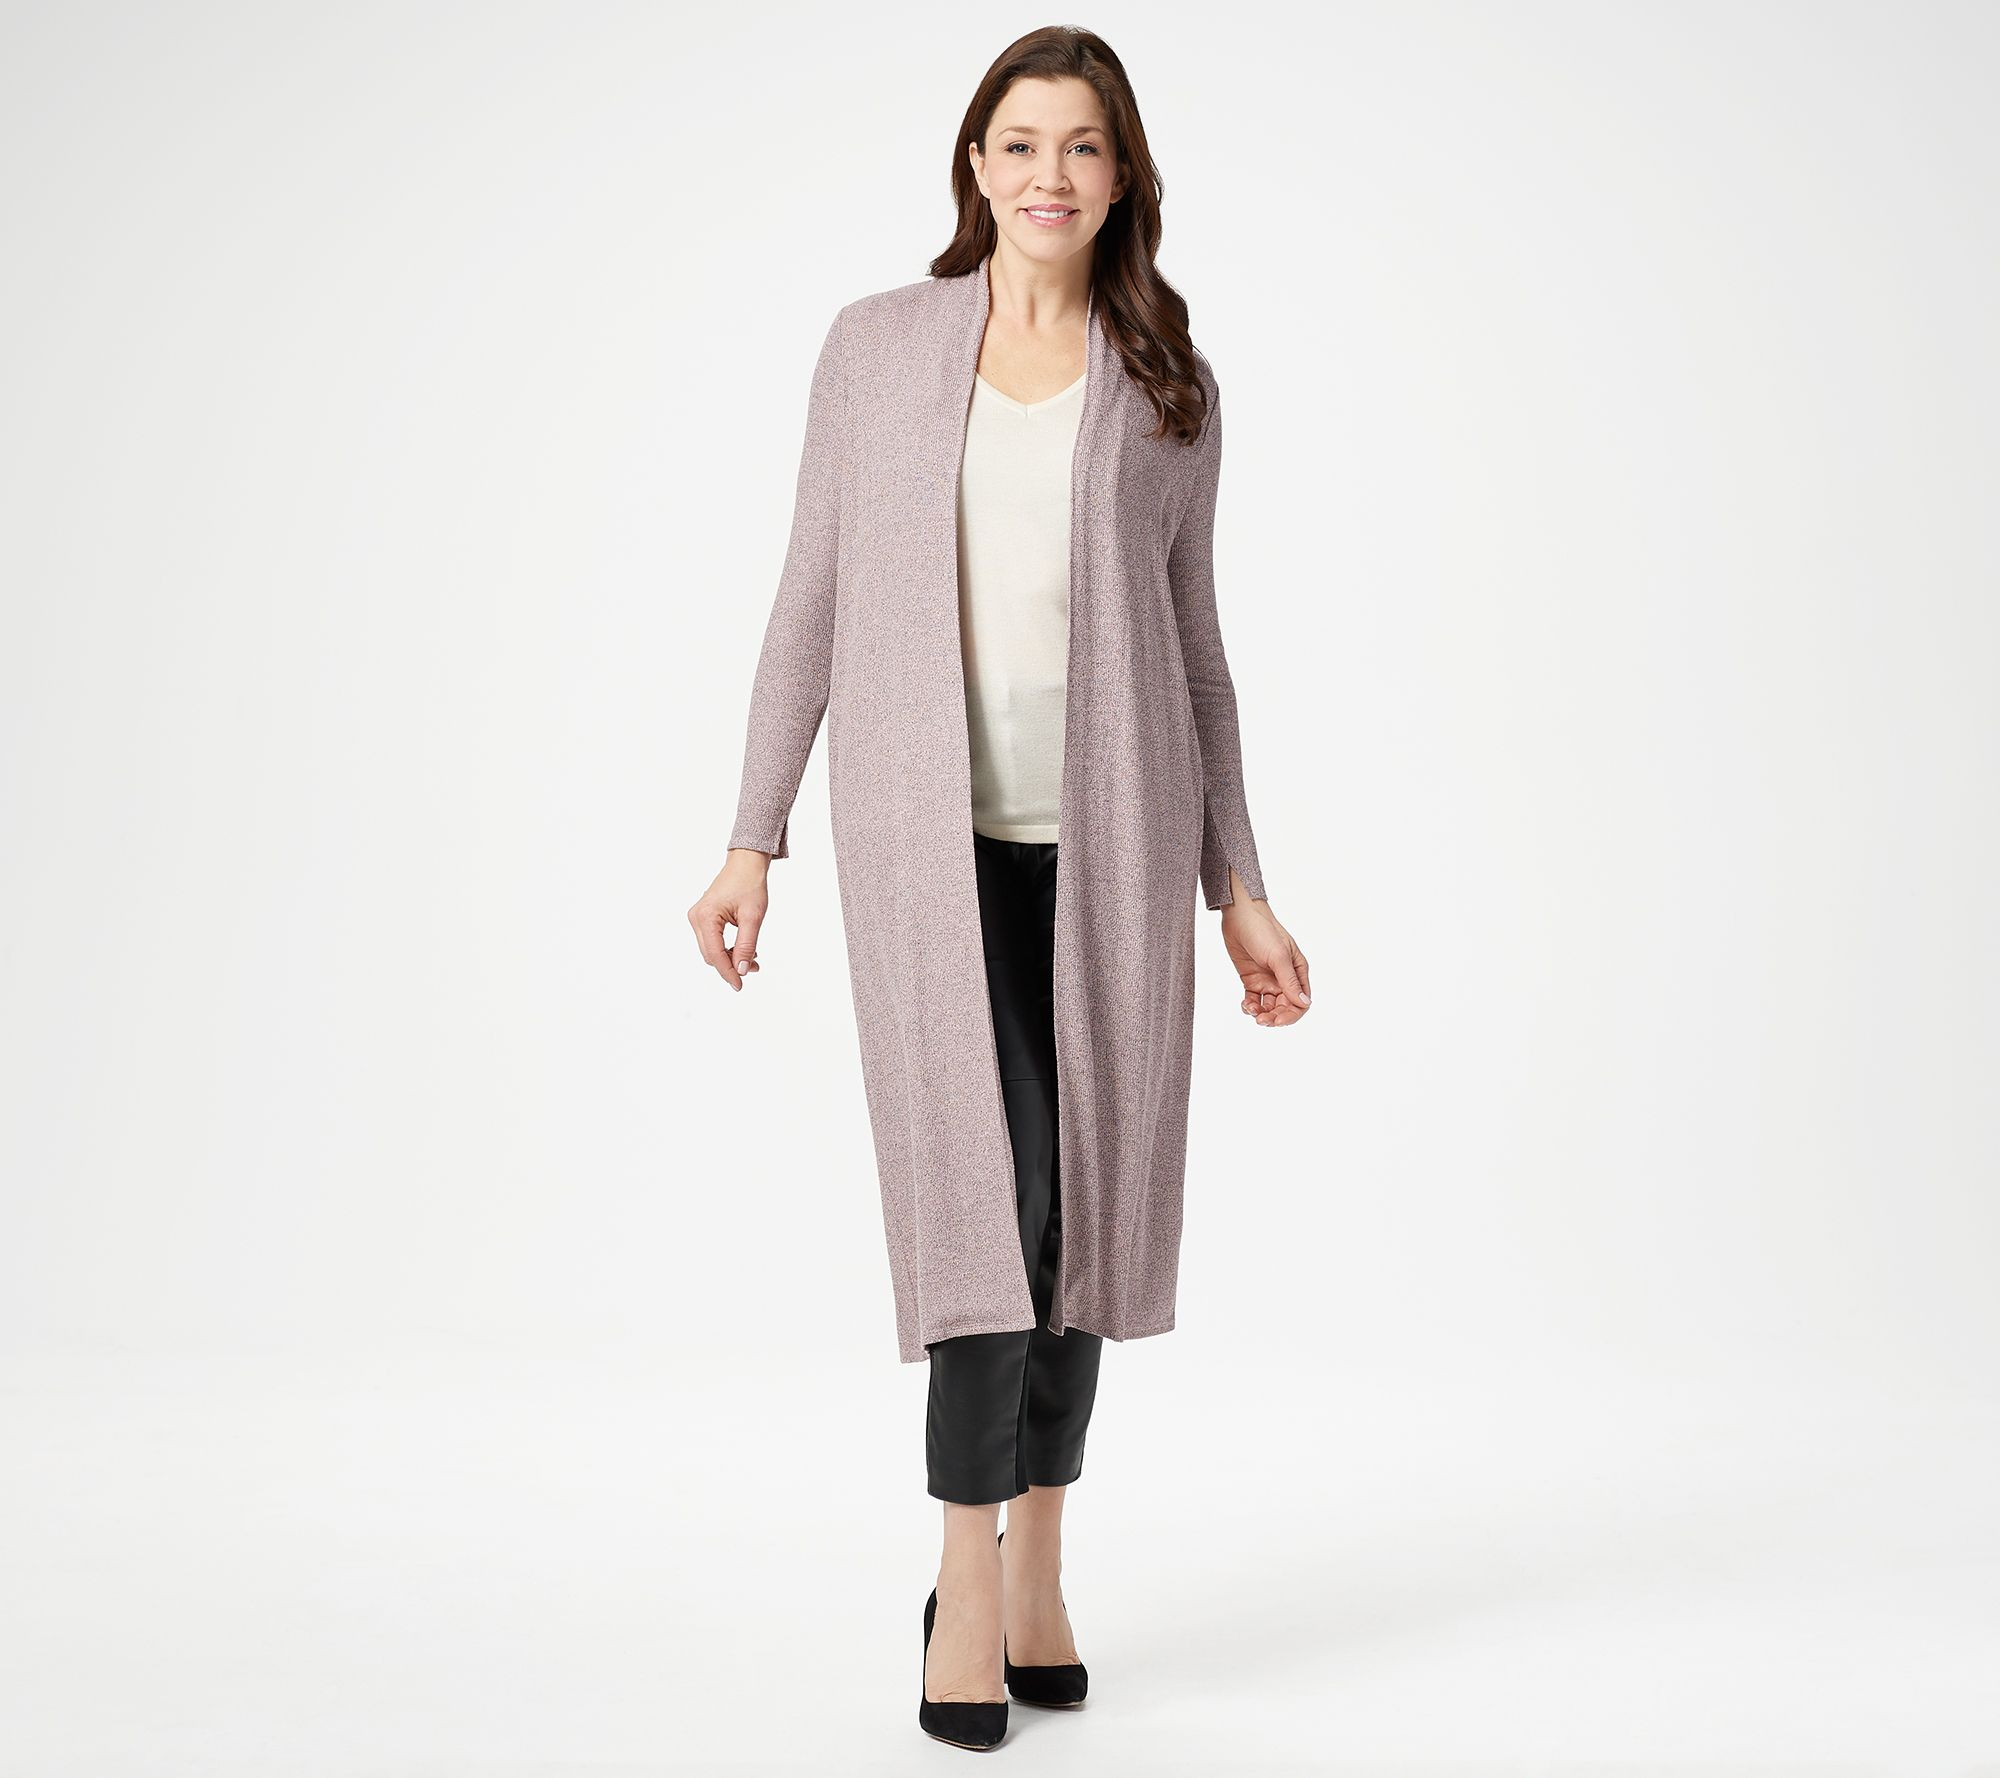 728c270722d7 Lisa Rinna Collection Petite Open Front Duster Cardigan - Page 1 — QVC.com